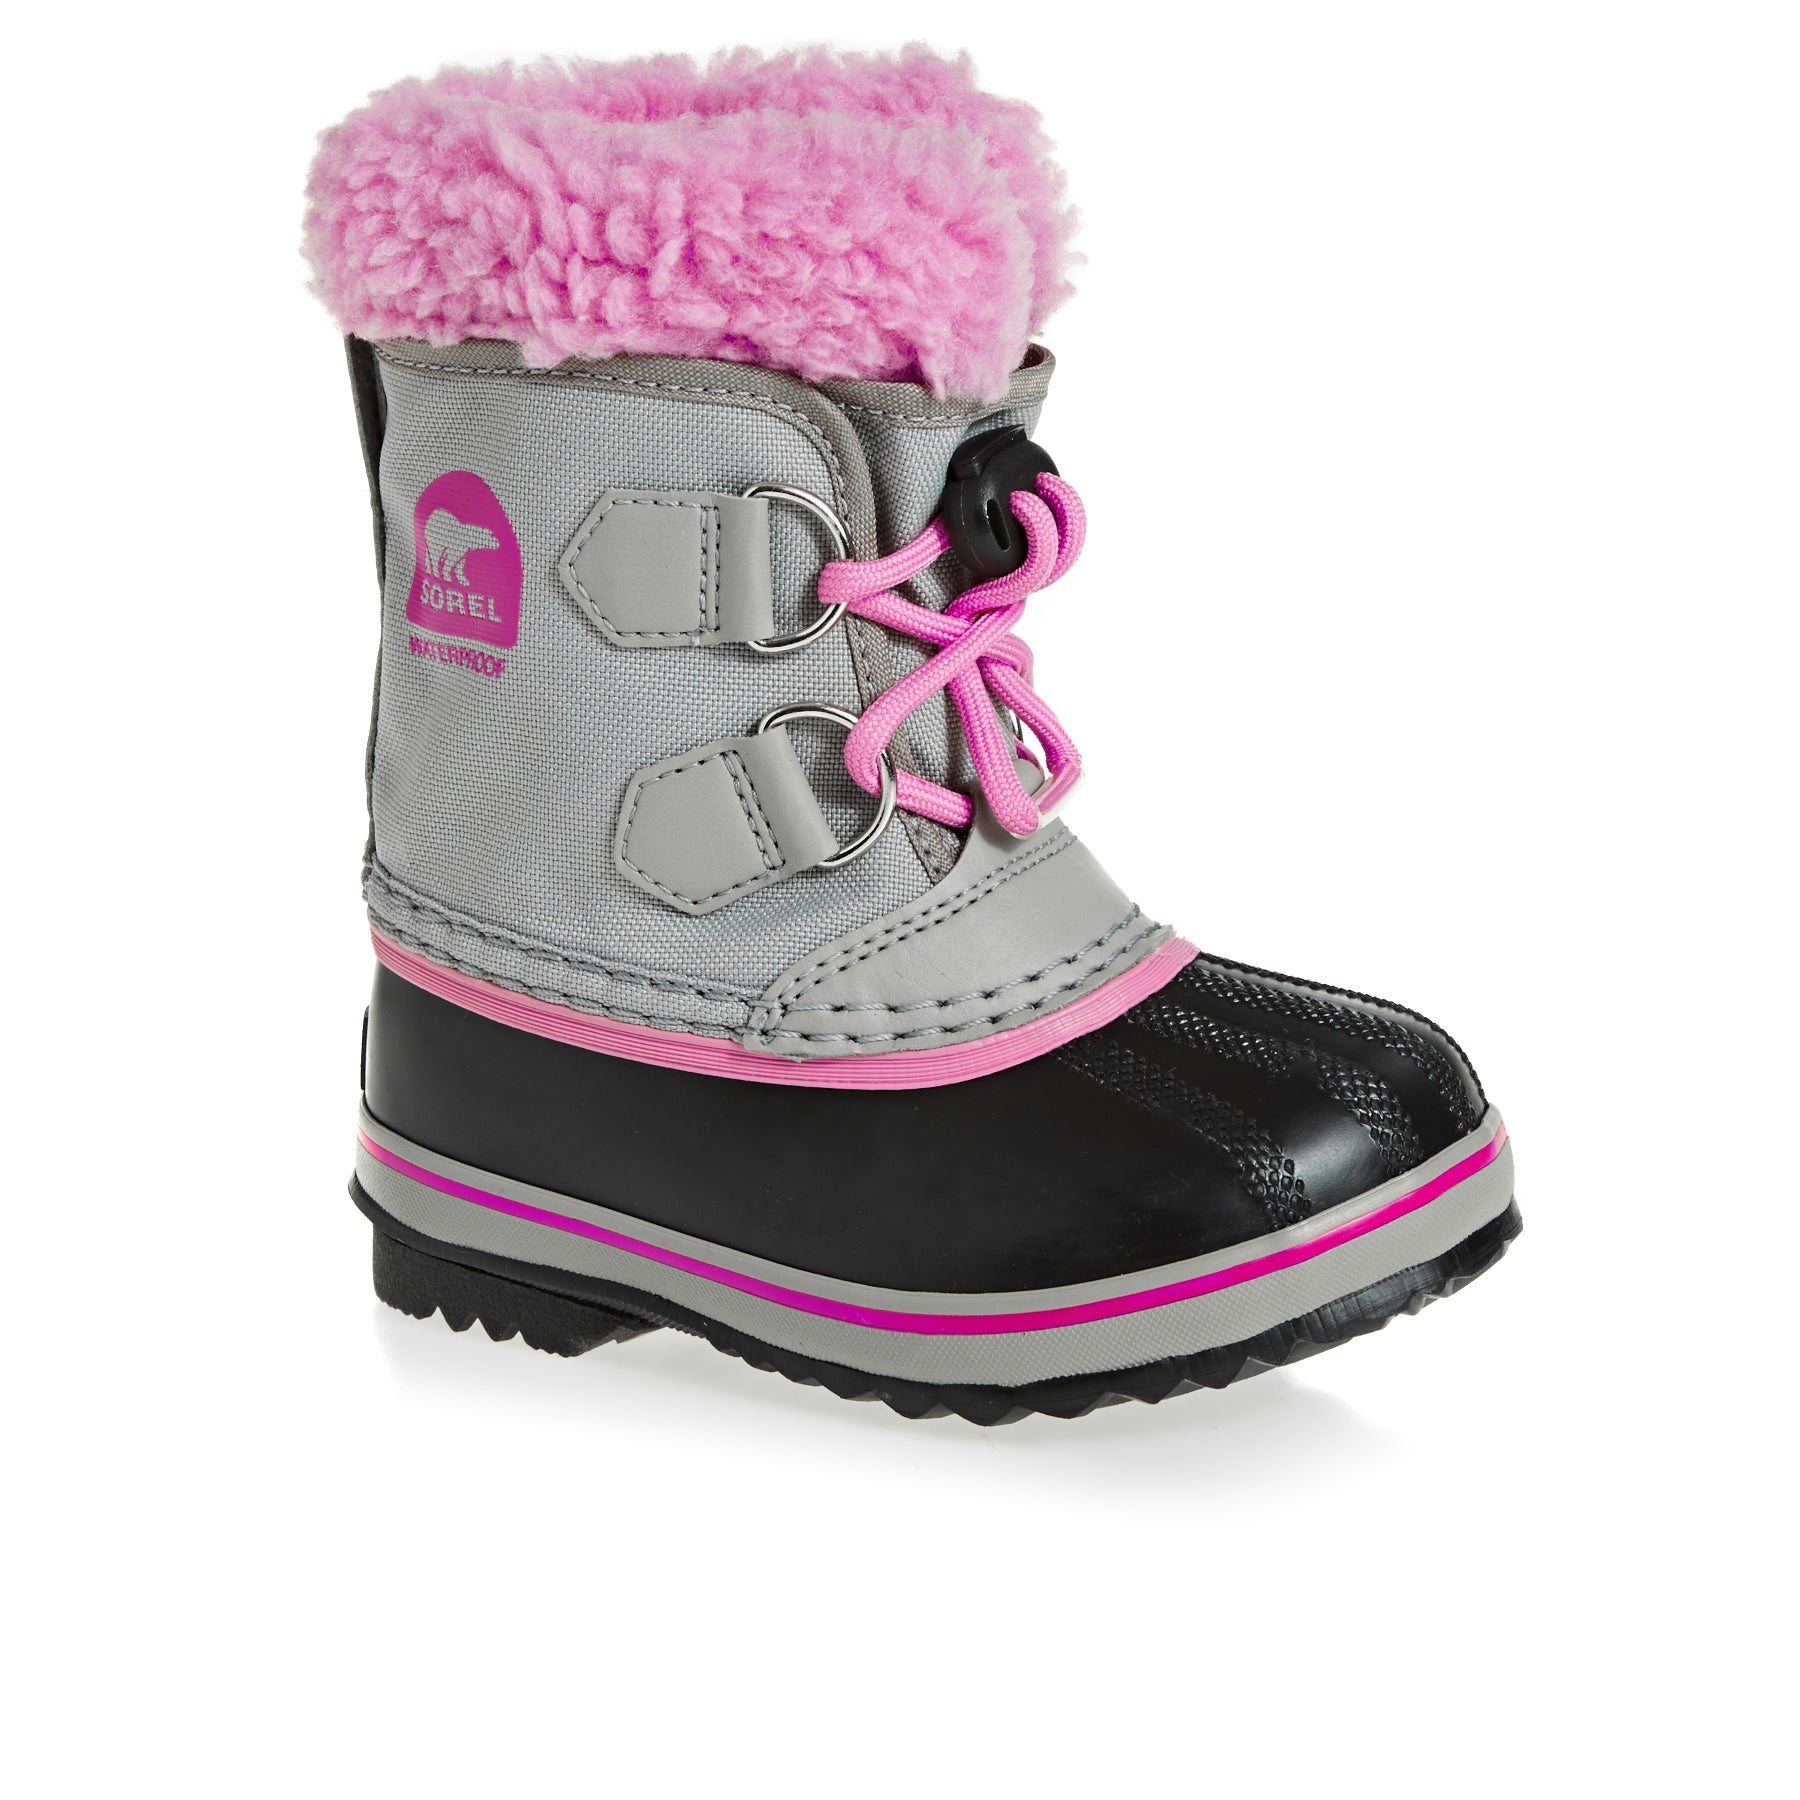 Sorel Childrens Pack Nylon Kids Boots - Chromegrey Orchid